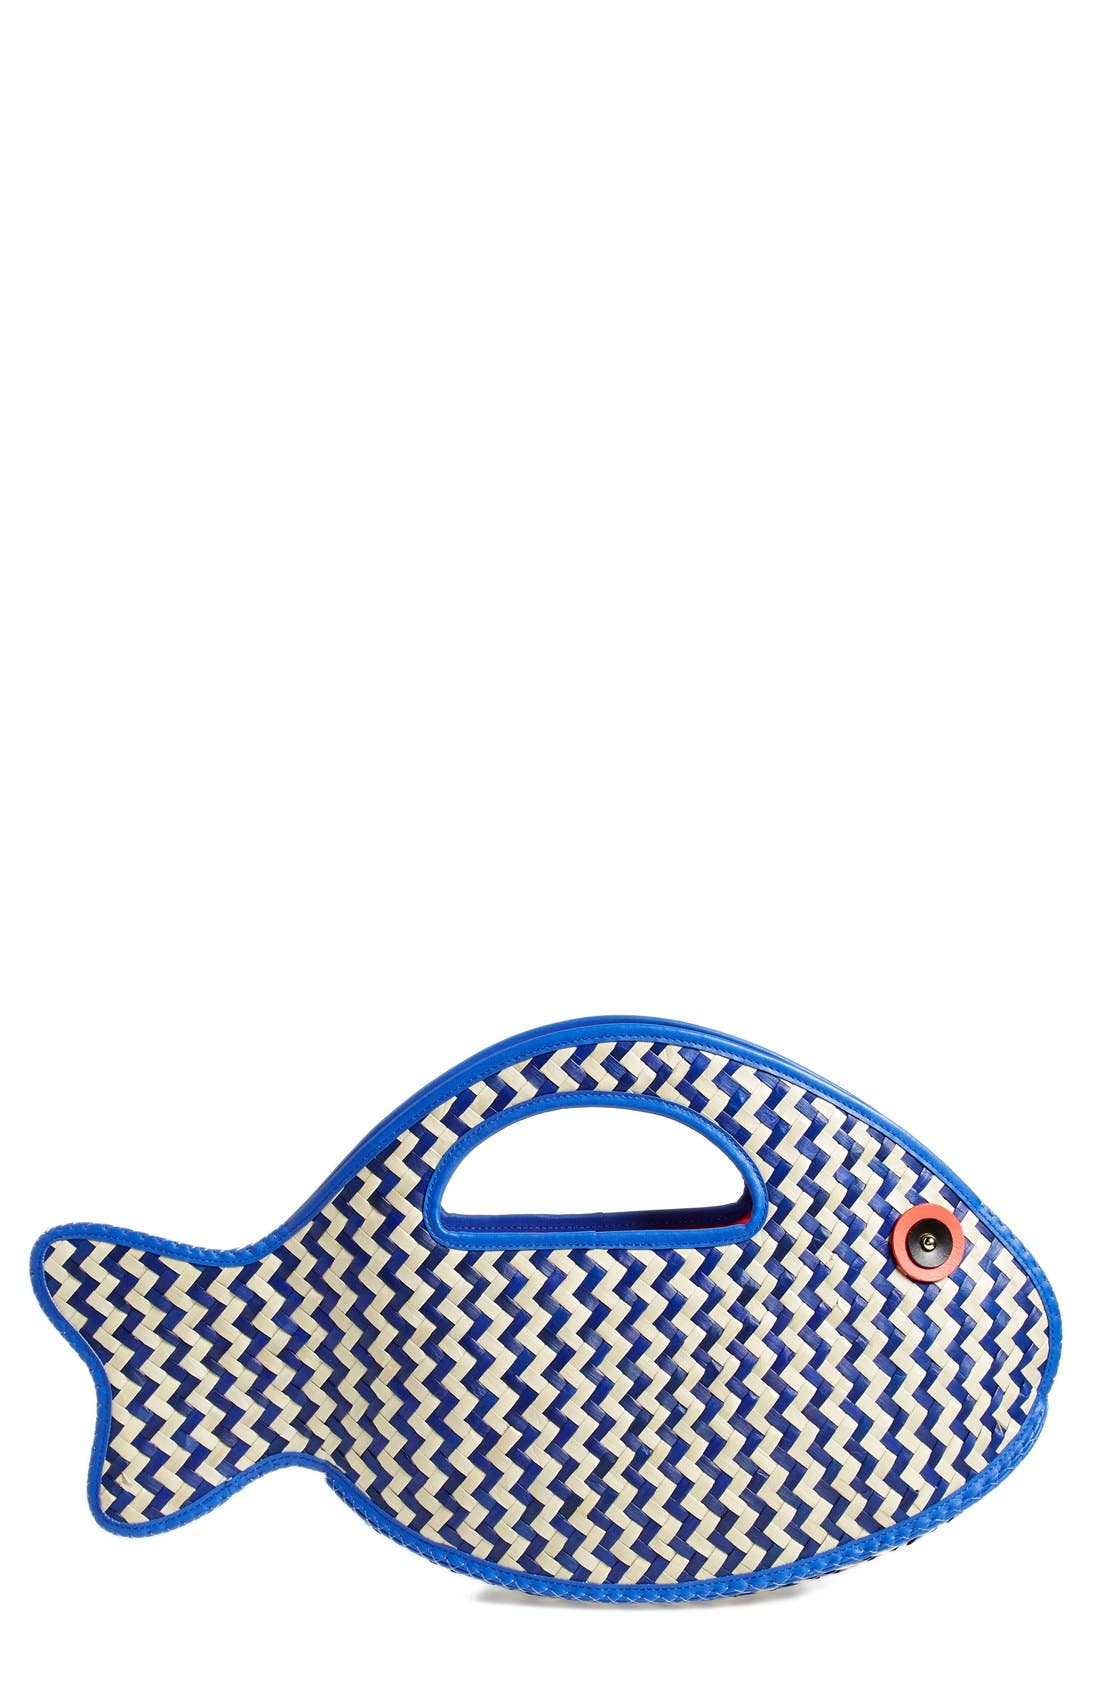 Alternate Image 1 Selected - kate spade new york 'splash out - fish' straw tote